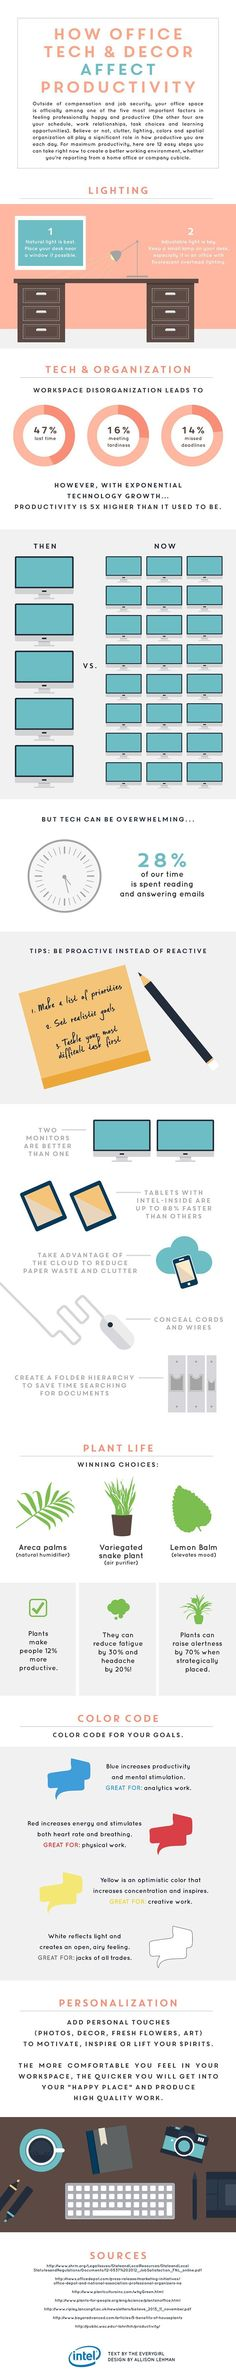 Infographic: How Office Tech & Decor Affect Productivity